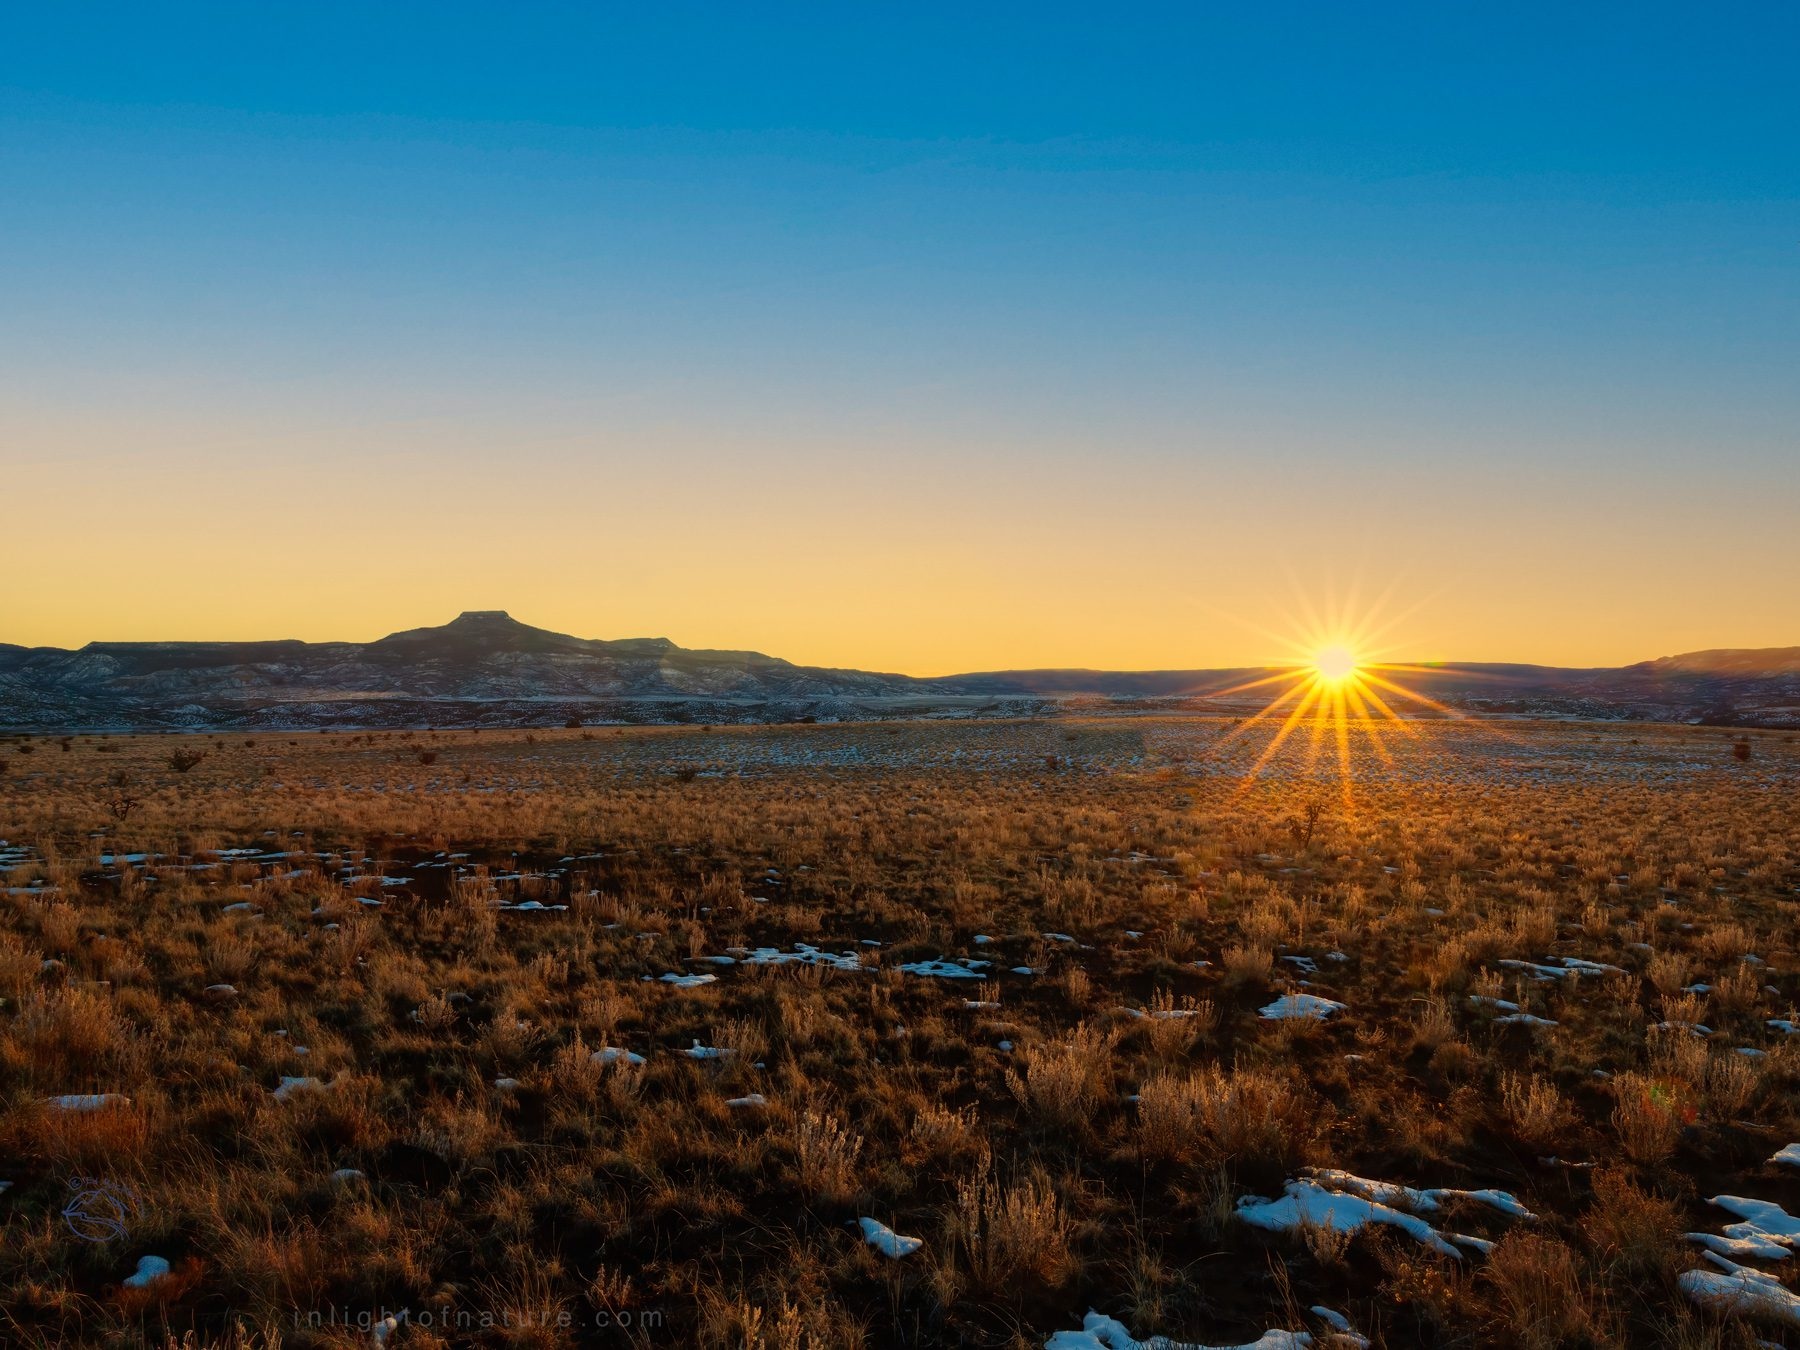 Sun setting on the horizon on Winter Solstice 2020 by Cerro Pedernal, New Mexico